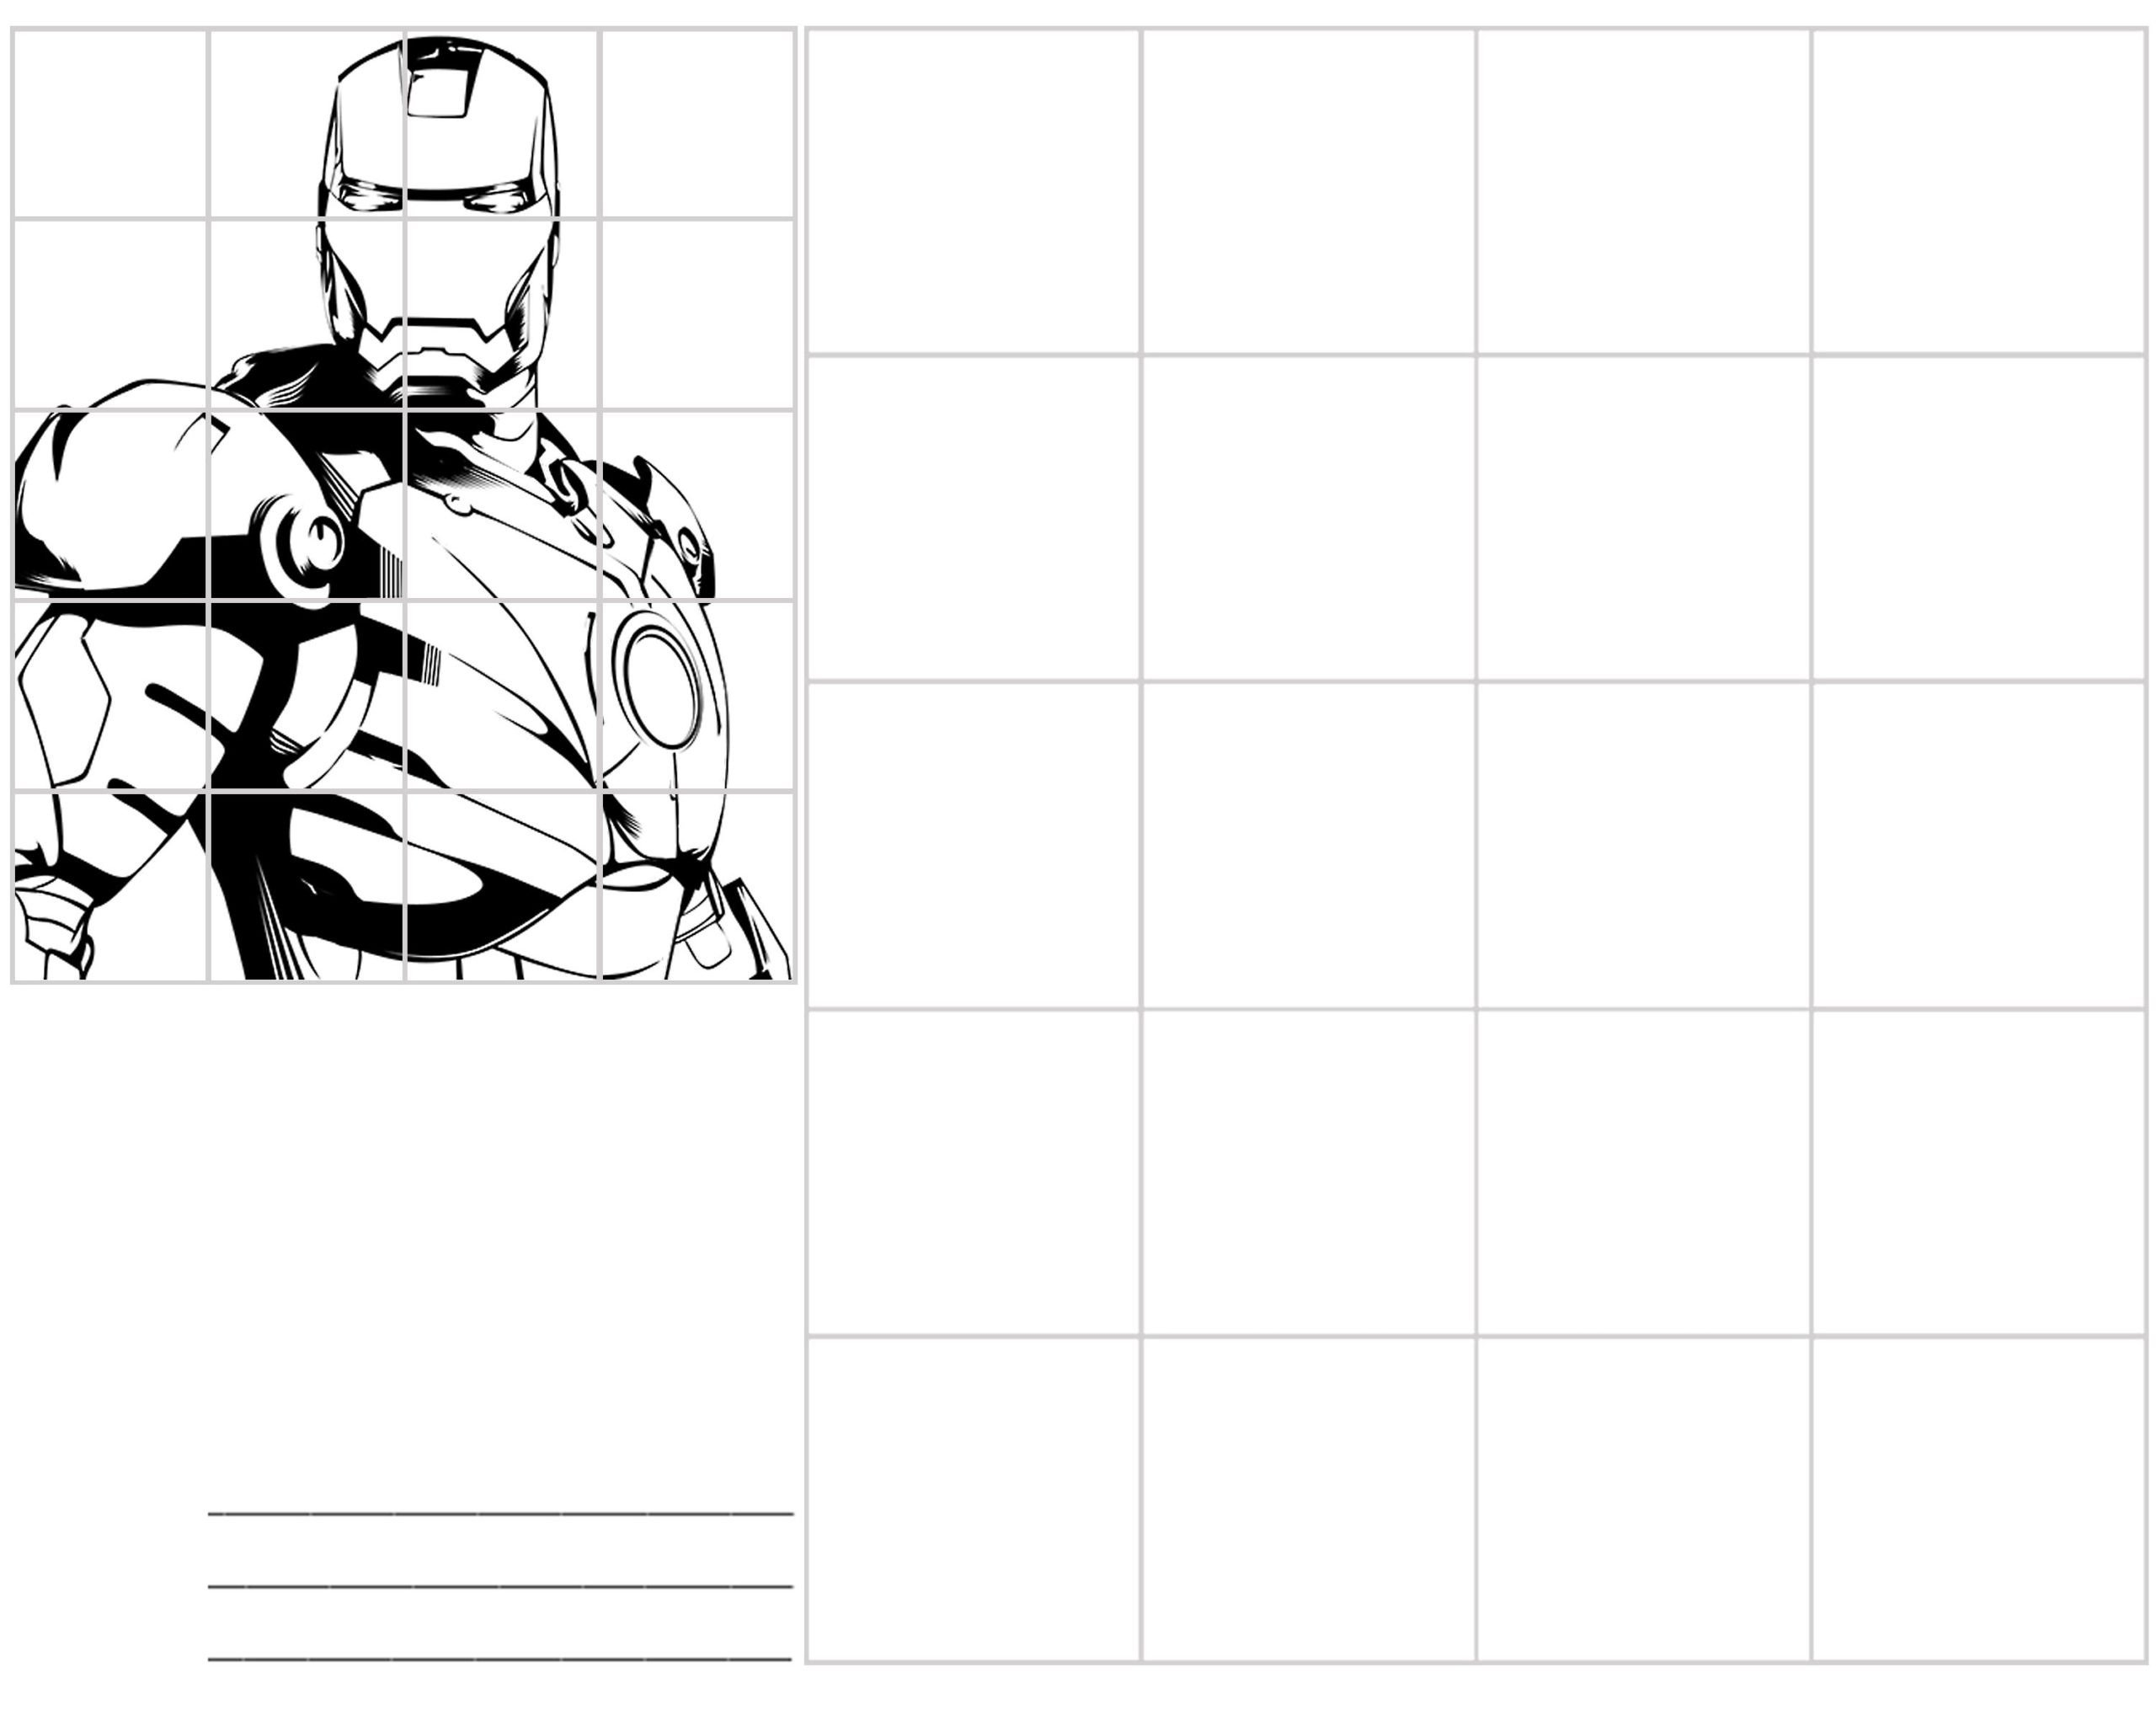 Coordinate Grid Worksheet Pdf Ironman Art Worksheets Elementary Classroom Coordinate Grid